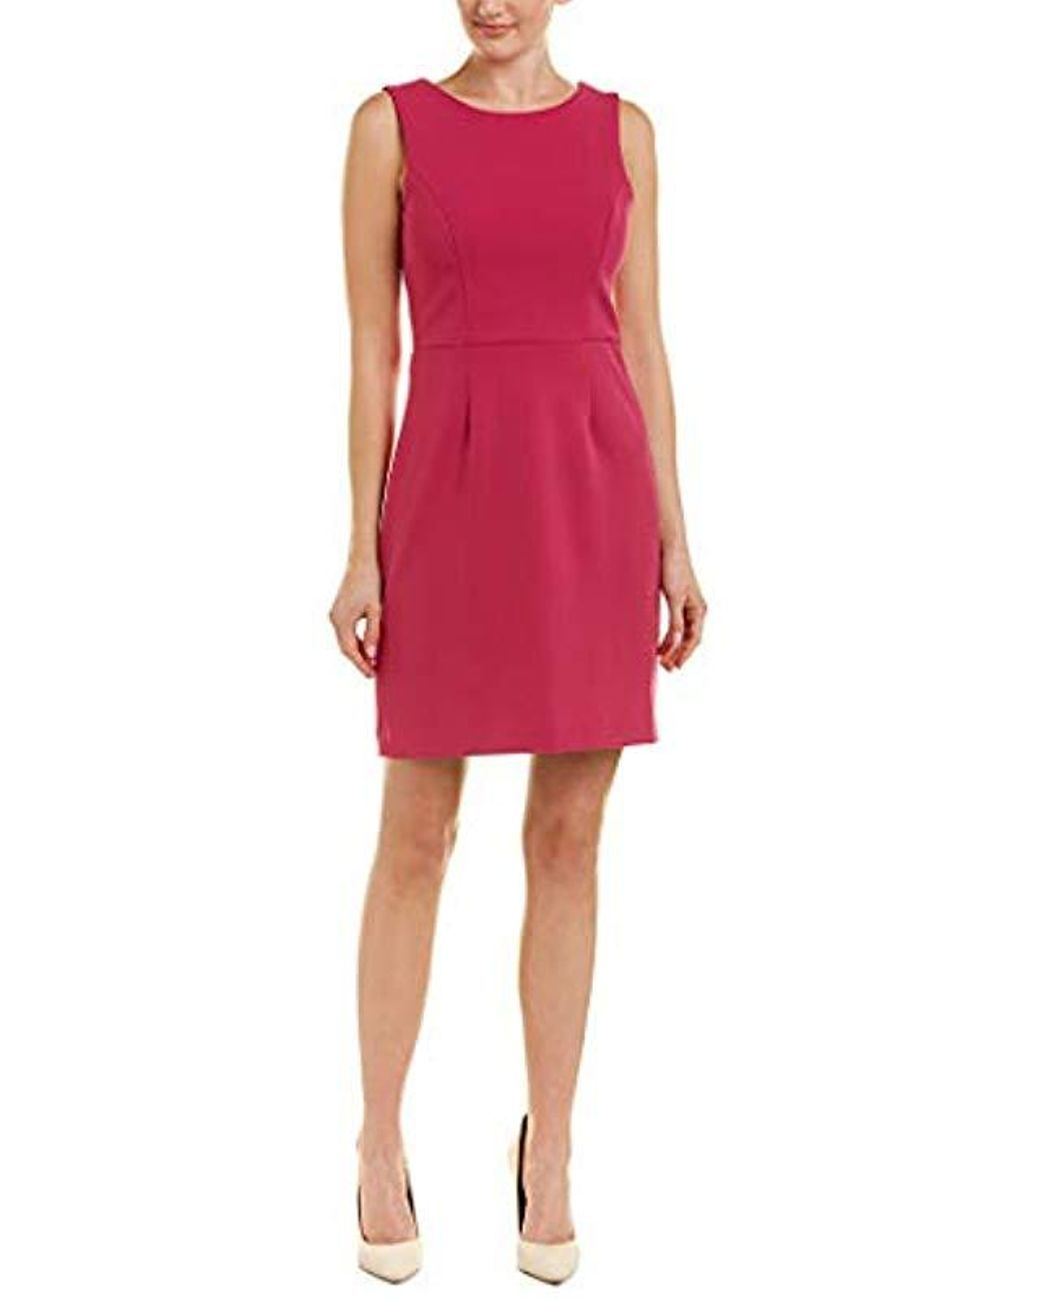 96f8945f335f Long-Touch to Zoom. Long-Touch to Zoom. 1; 2. Betsey Johnson - Pink Scuba  Crepe Dress With Cutout Back ...